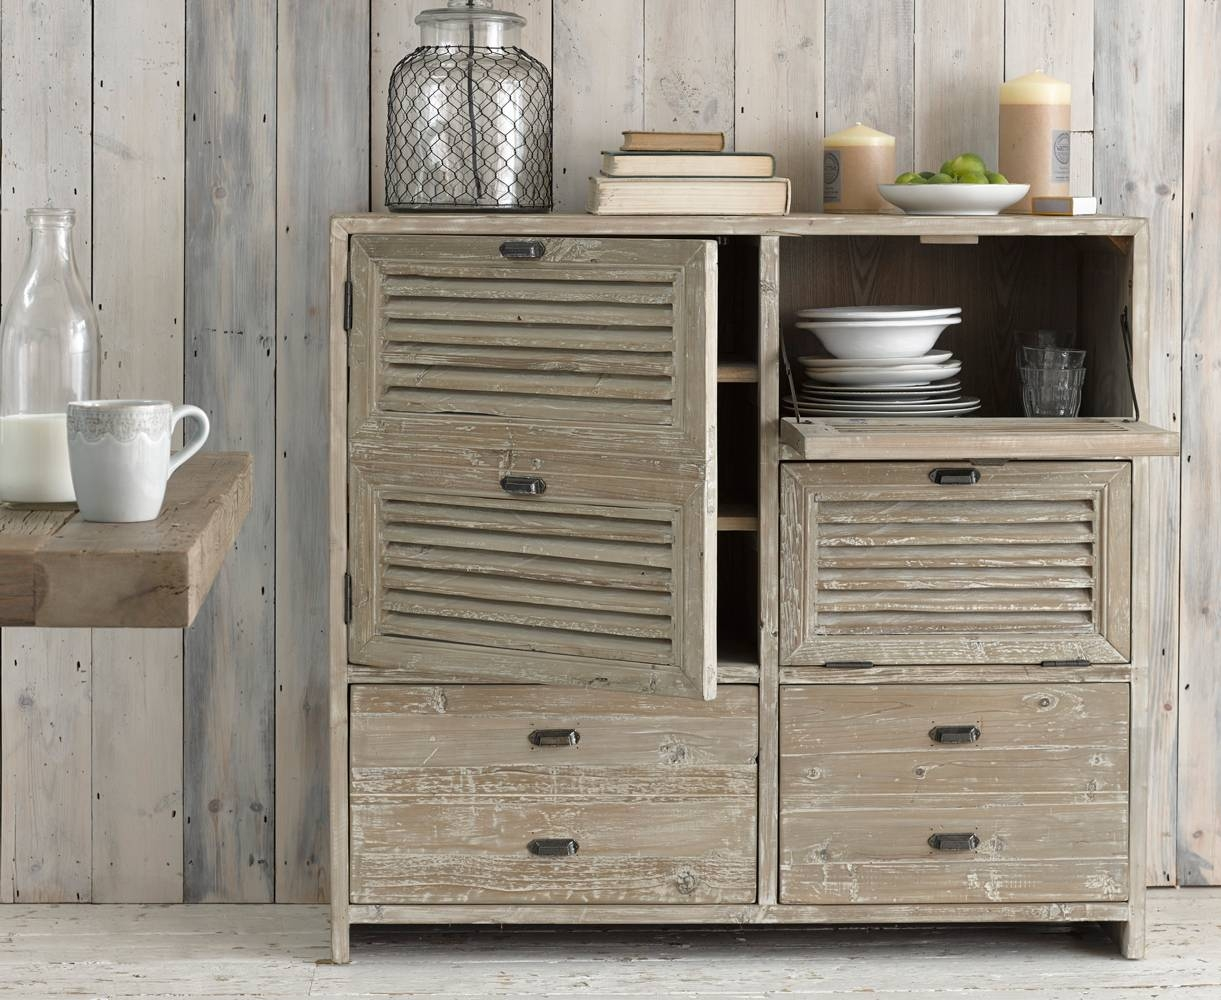 French Style Sideboard | Sucre | Loaf Regarding Sideboards With Drawers (View 6 of 15)